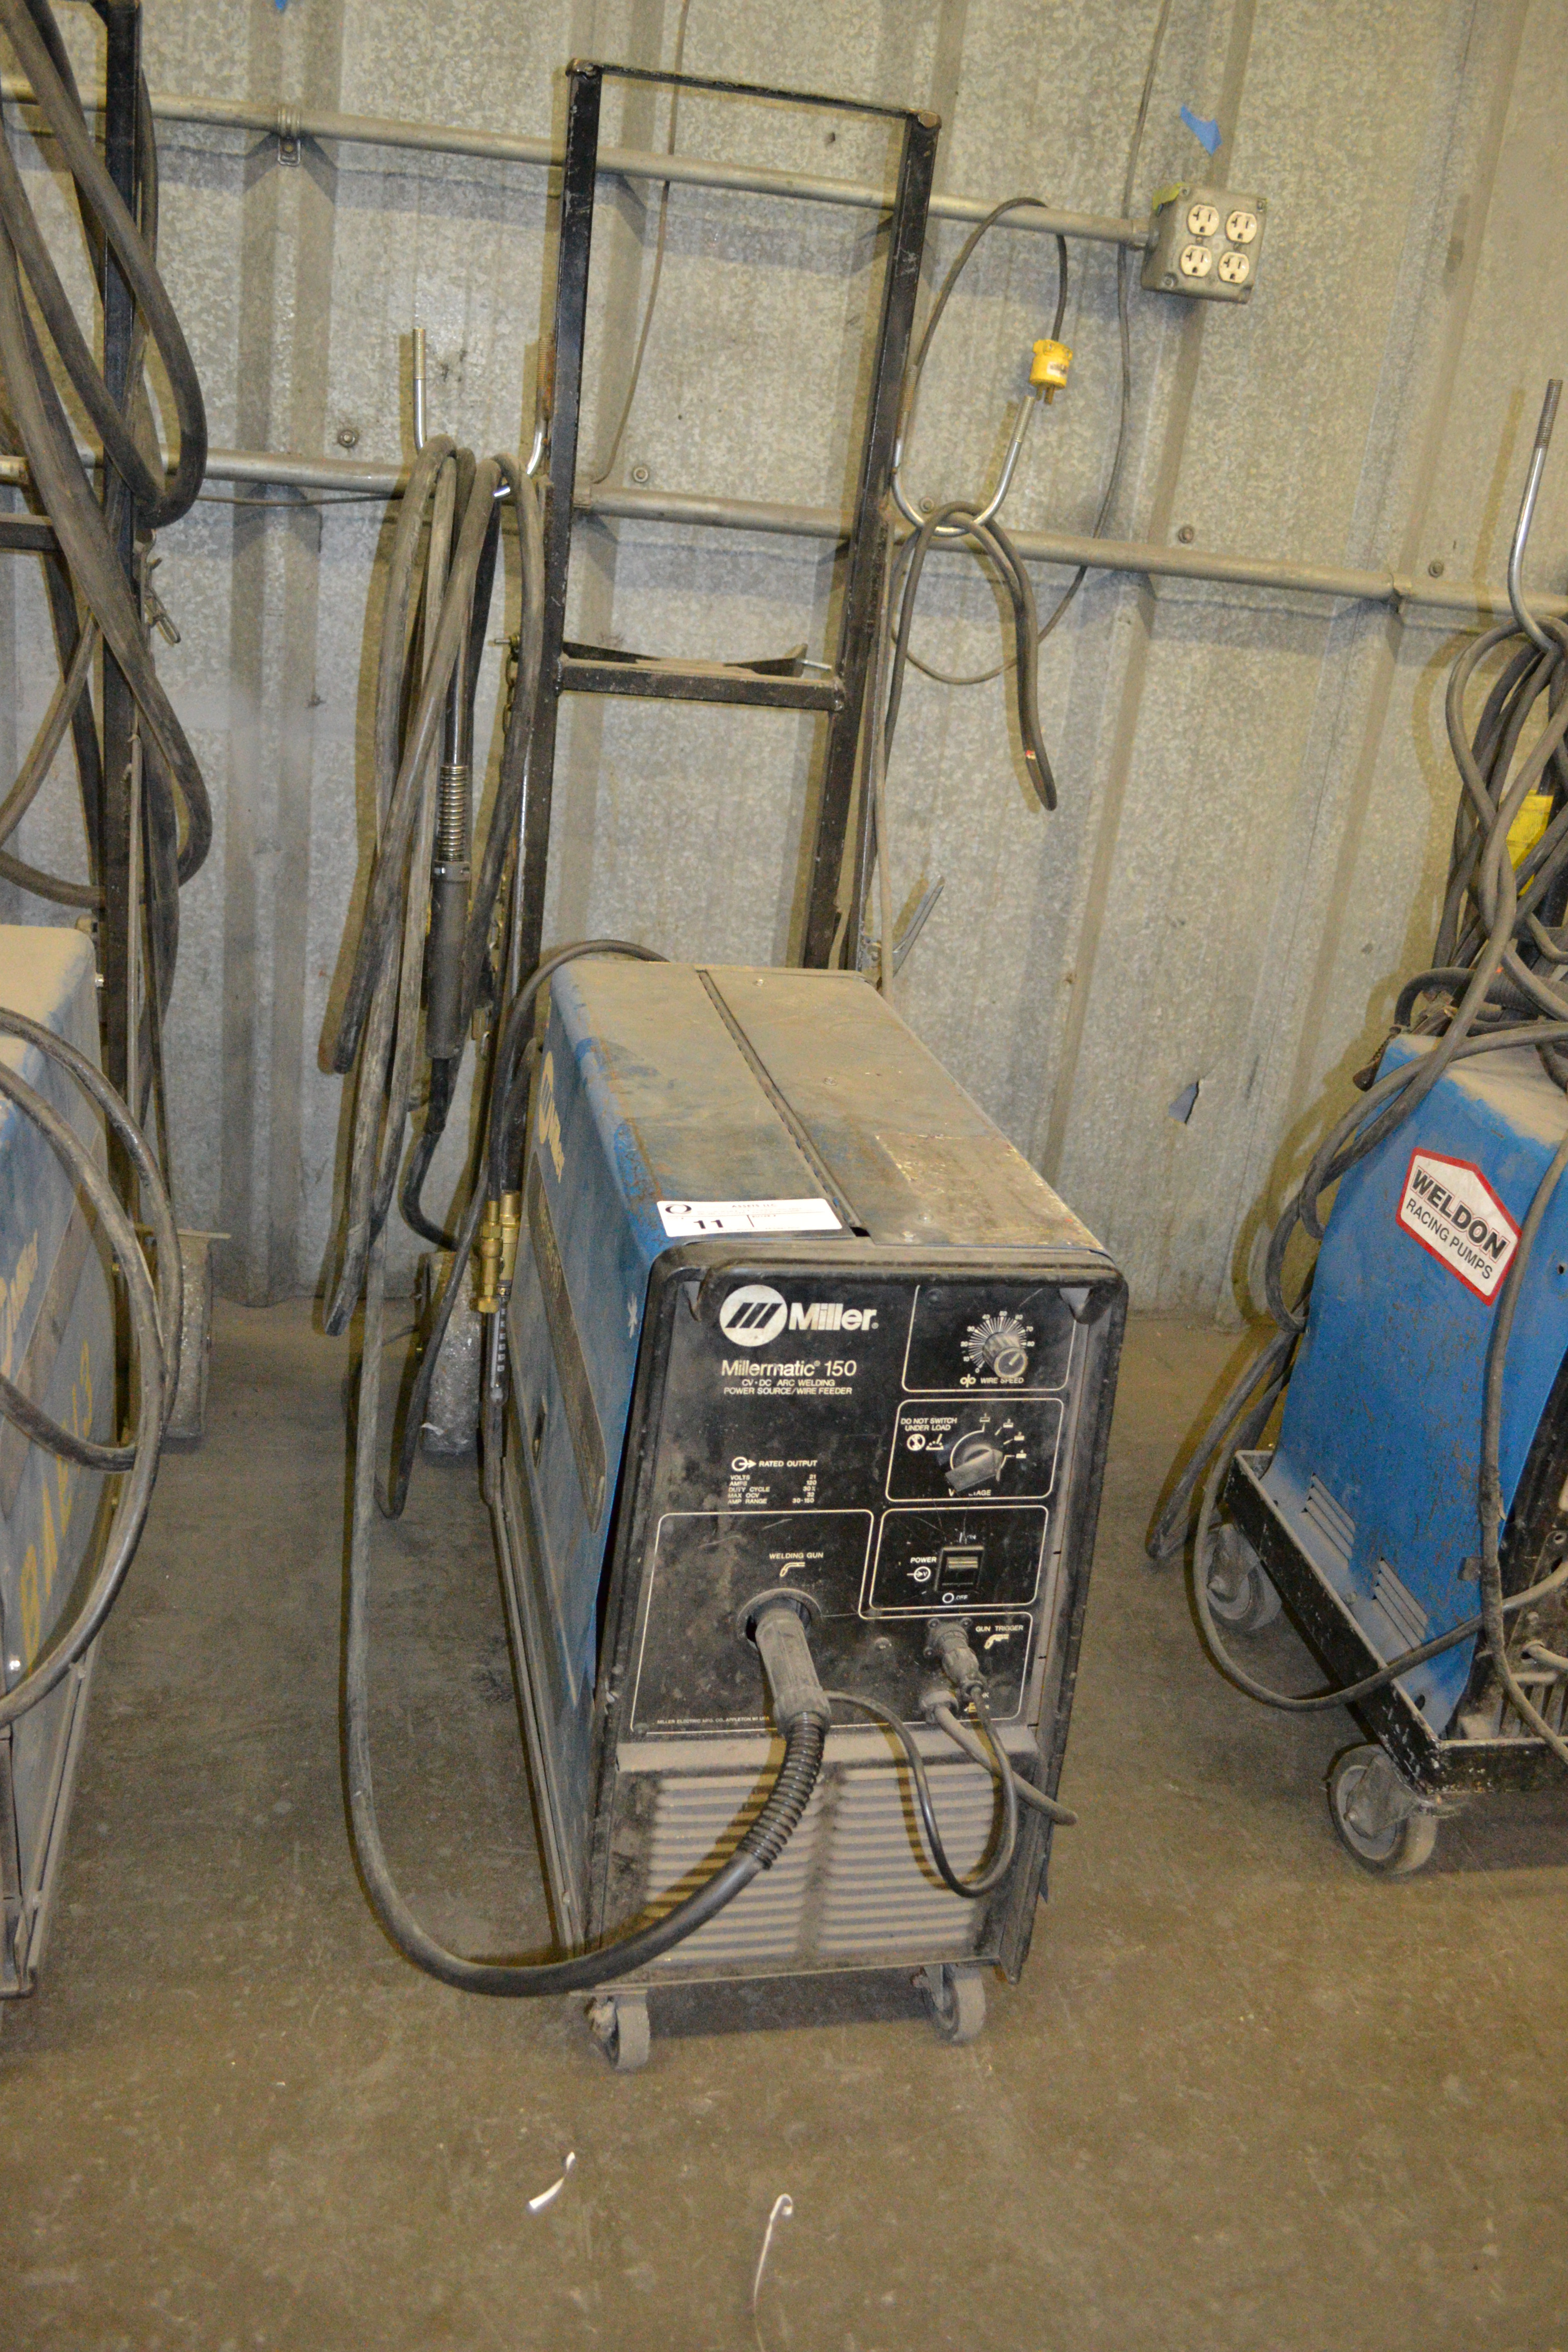 Lot 11 - Millermatic 150 CV/DC welder with wire feed  SN: KD5227509